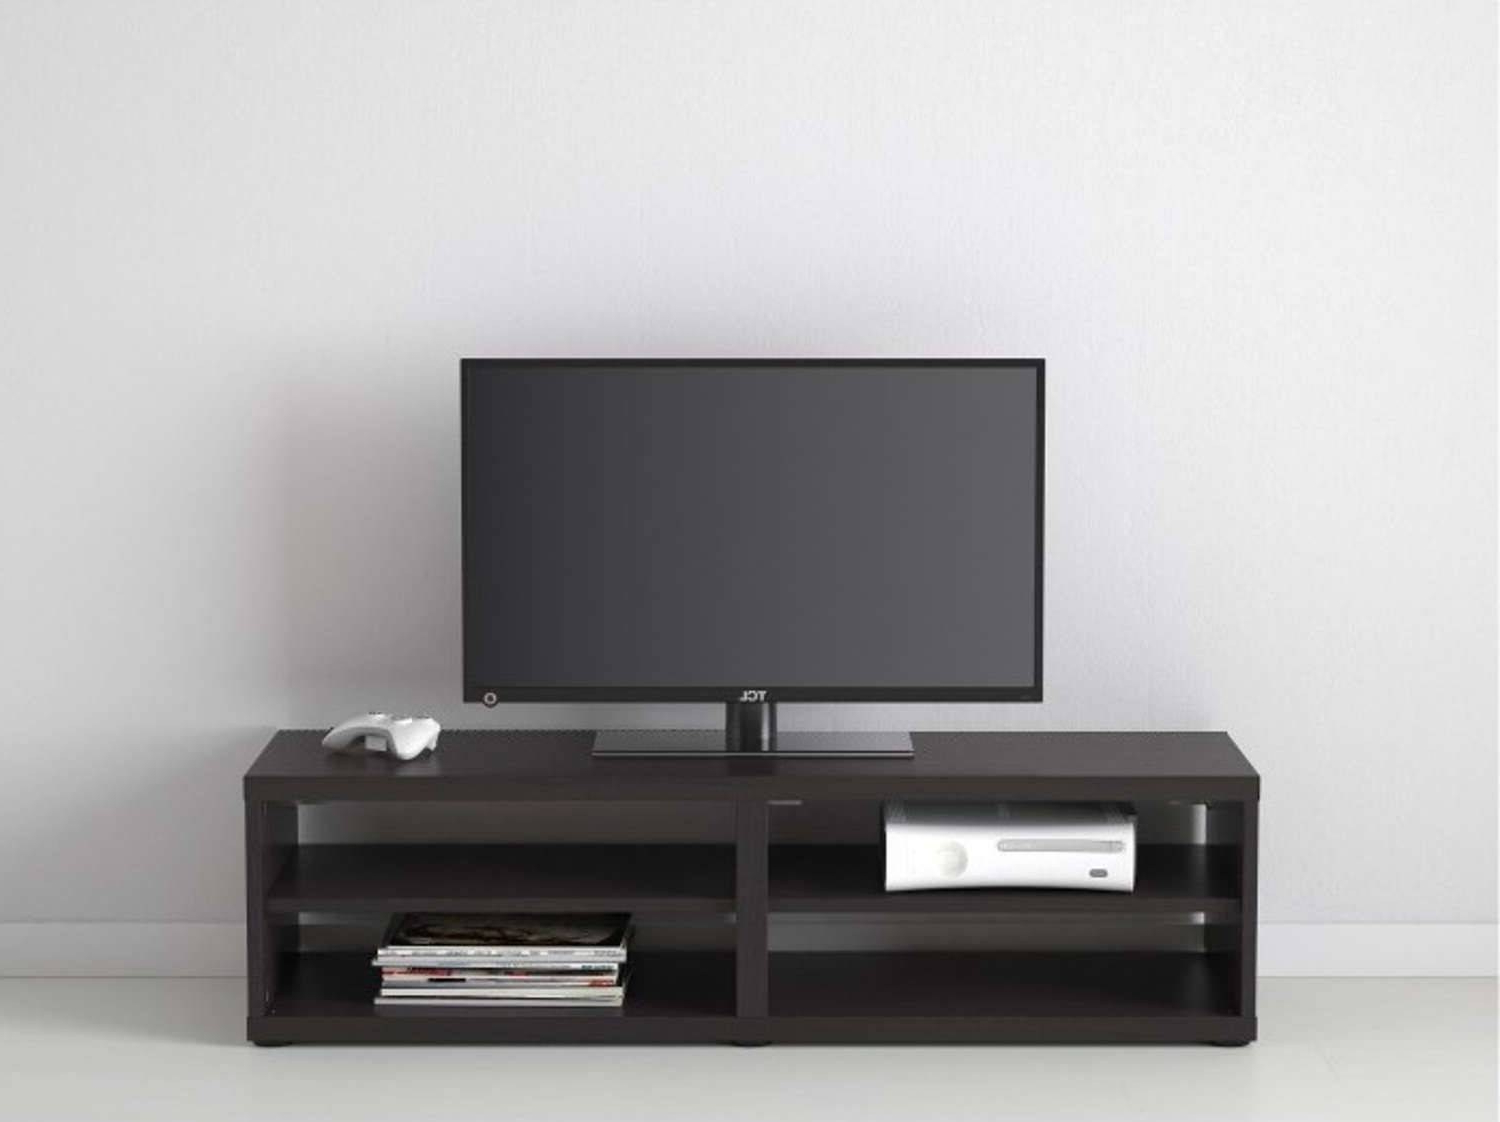 Small Black Tv Cabinets Pertaining To Recent Tv Stand Clearance Black 55 Inch Big Lots Stands Target Small With (Gallery 18 of 20)